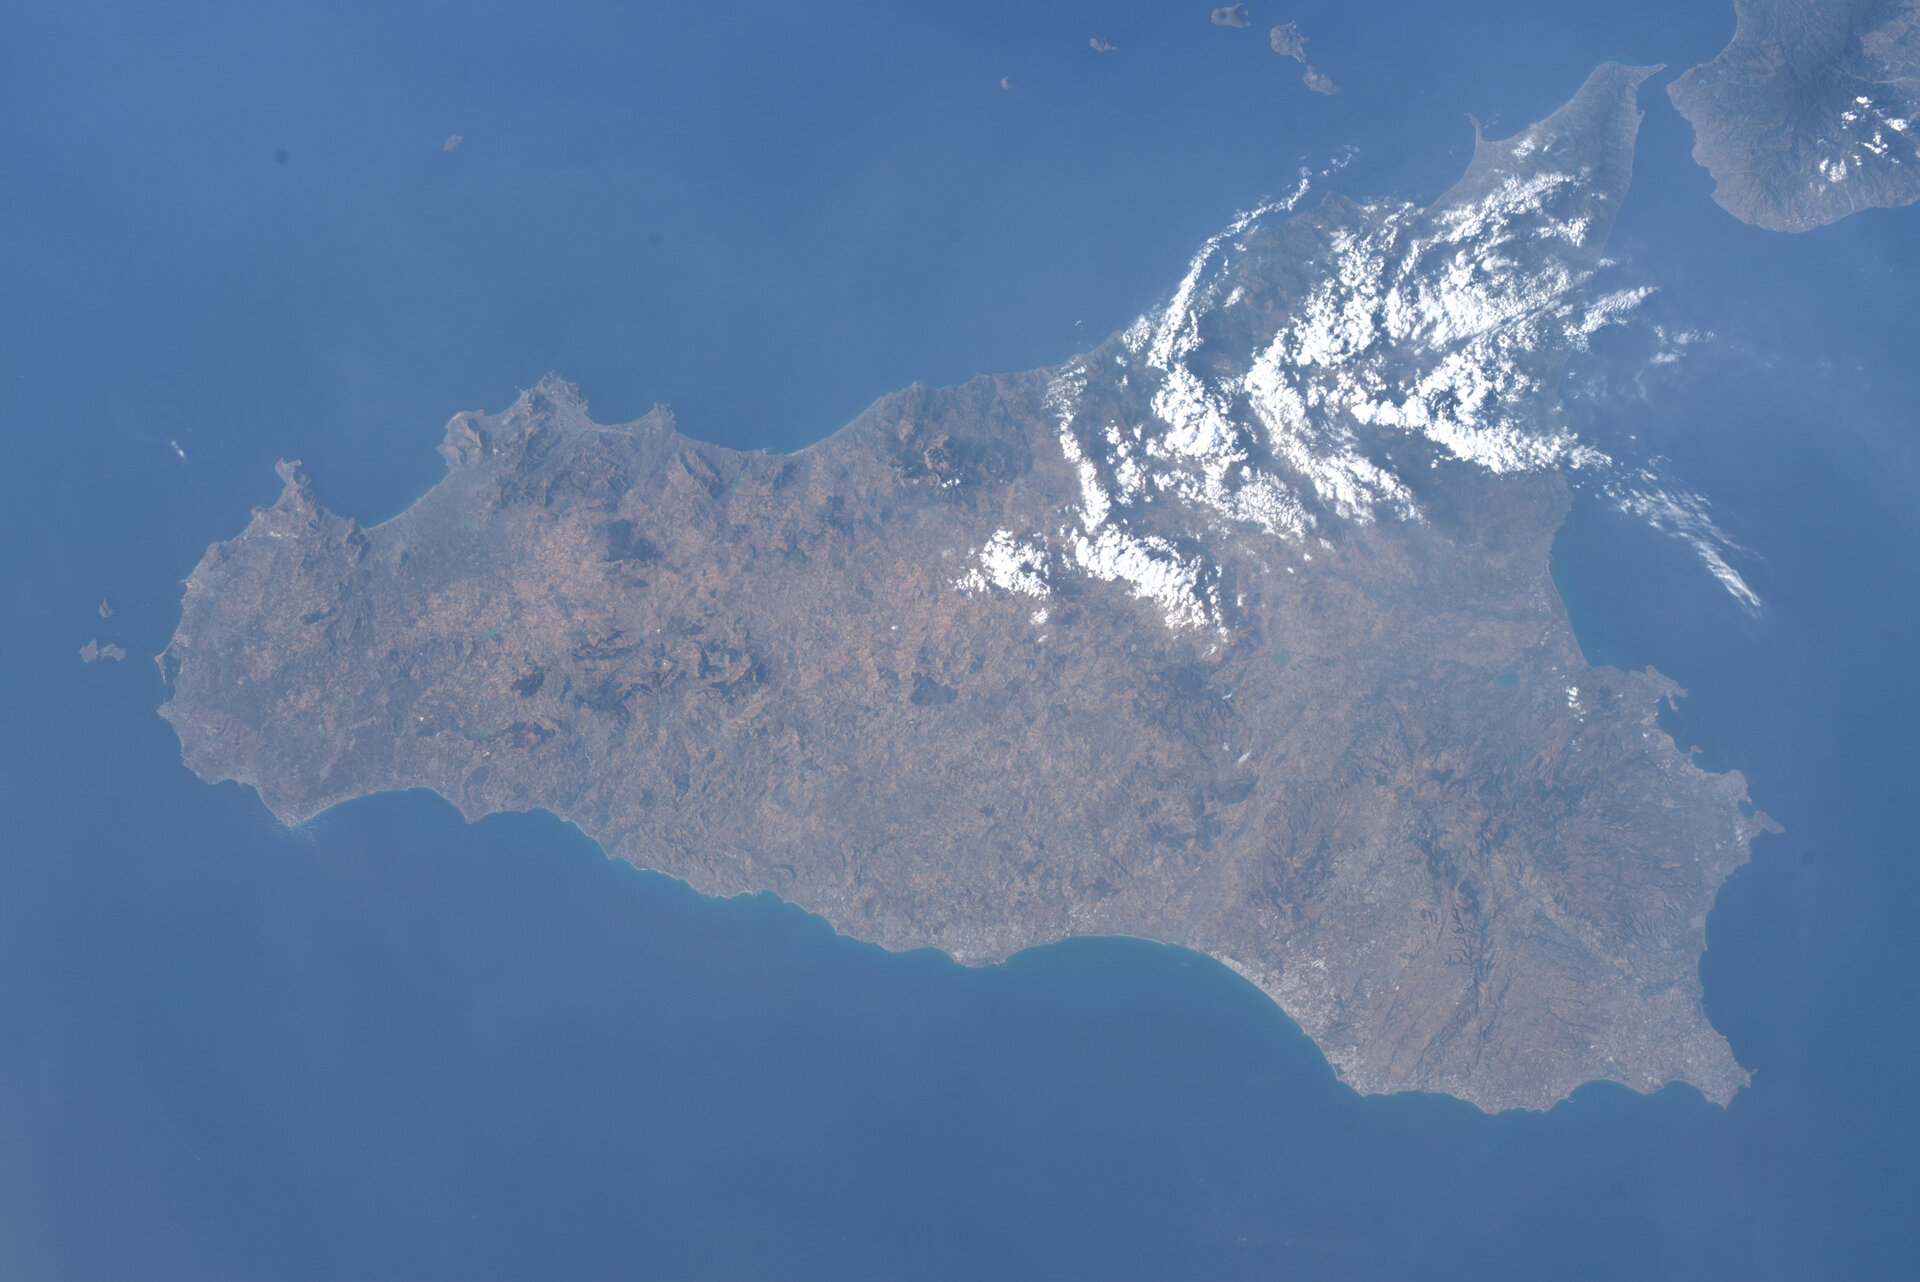 A photo of Sicily, Italy captured by ESA astronaut Luca Parmitano